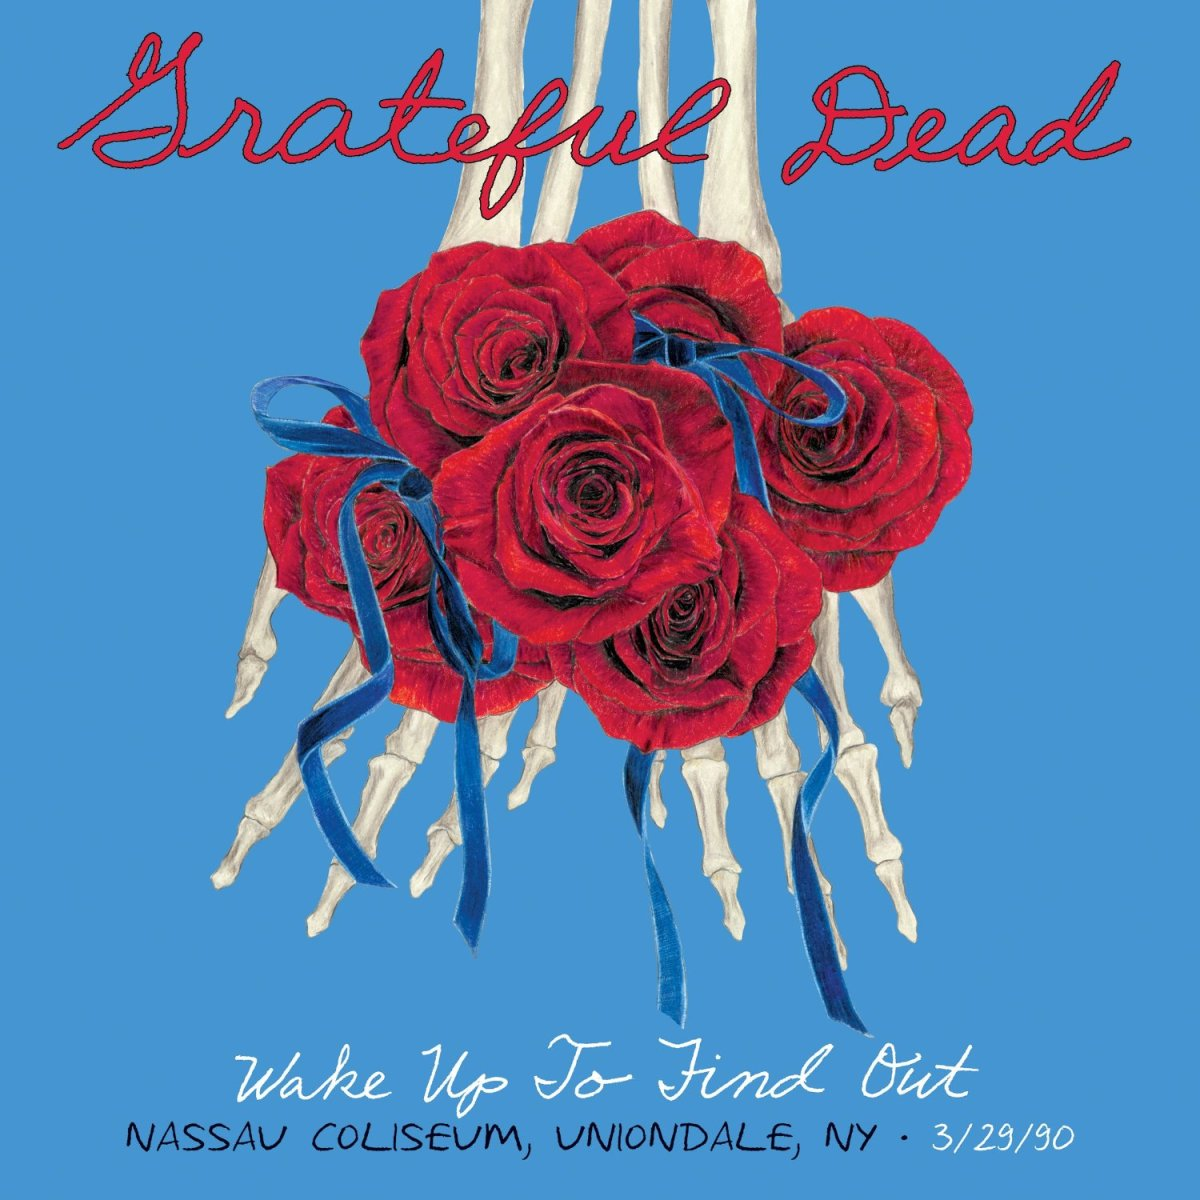 Fresh GRATEFUL DEAD:  Wake Up To Find Out: Nassau Coliseum, Uniondale, NY 3/29/1990